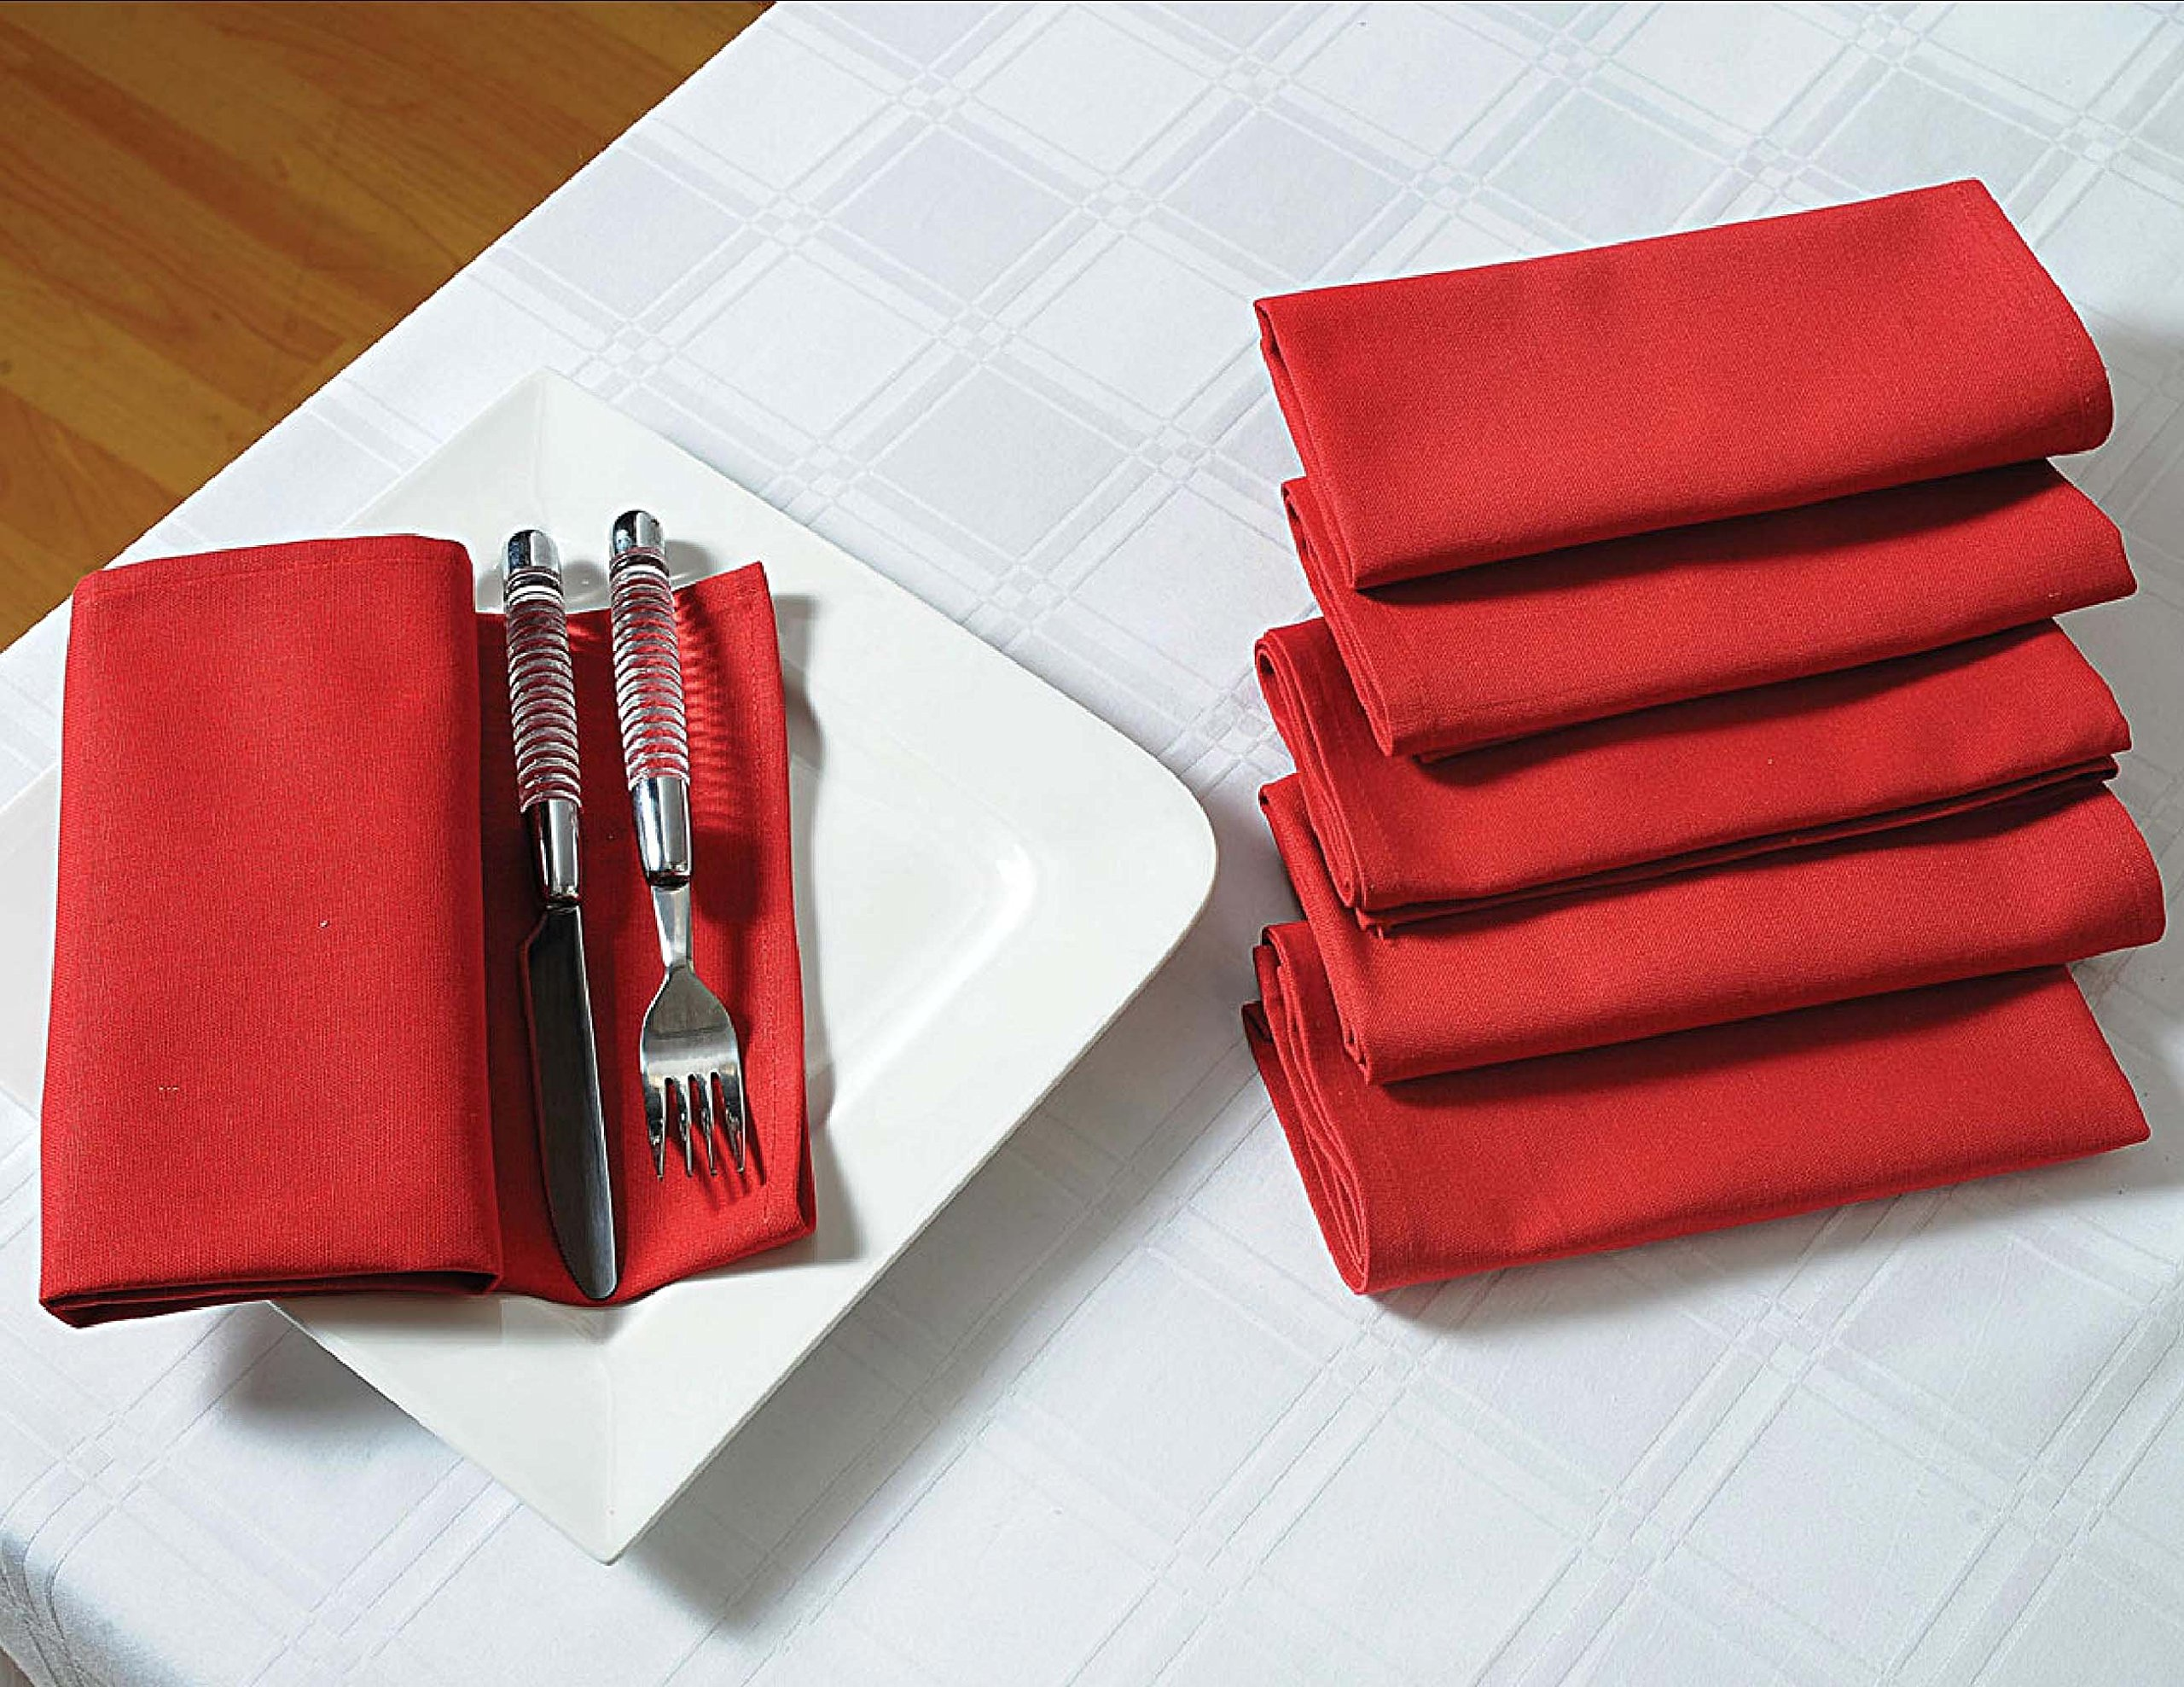 Solid Color Cotton Dinner Napkins - 20'' x 20'' - Set of 6 Premium Table Linens for the Dining Room - Maroon Red